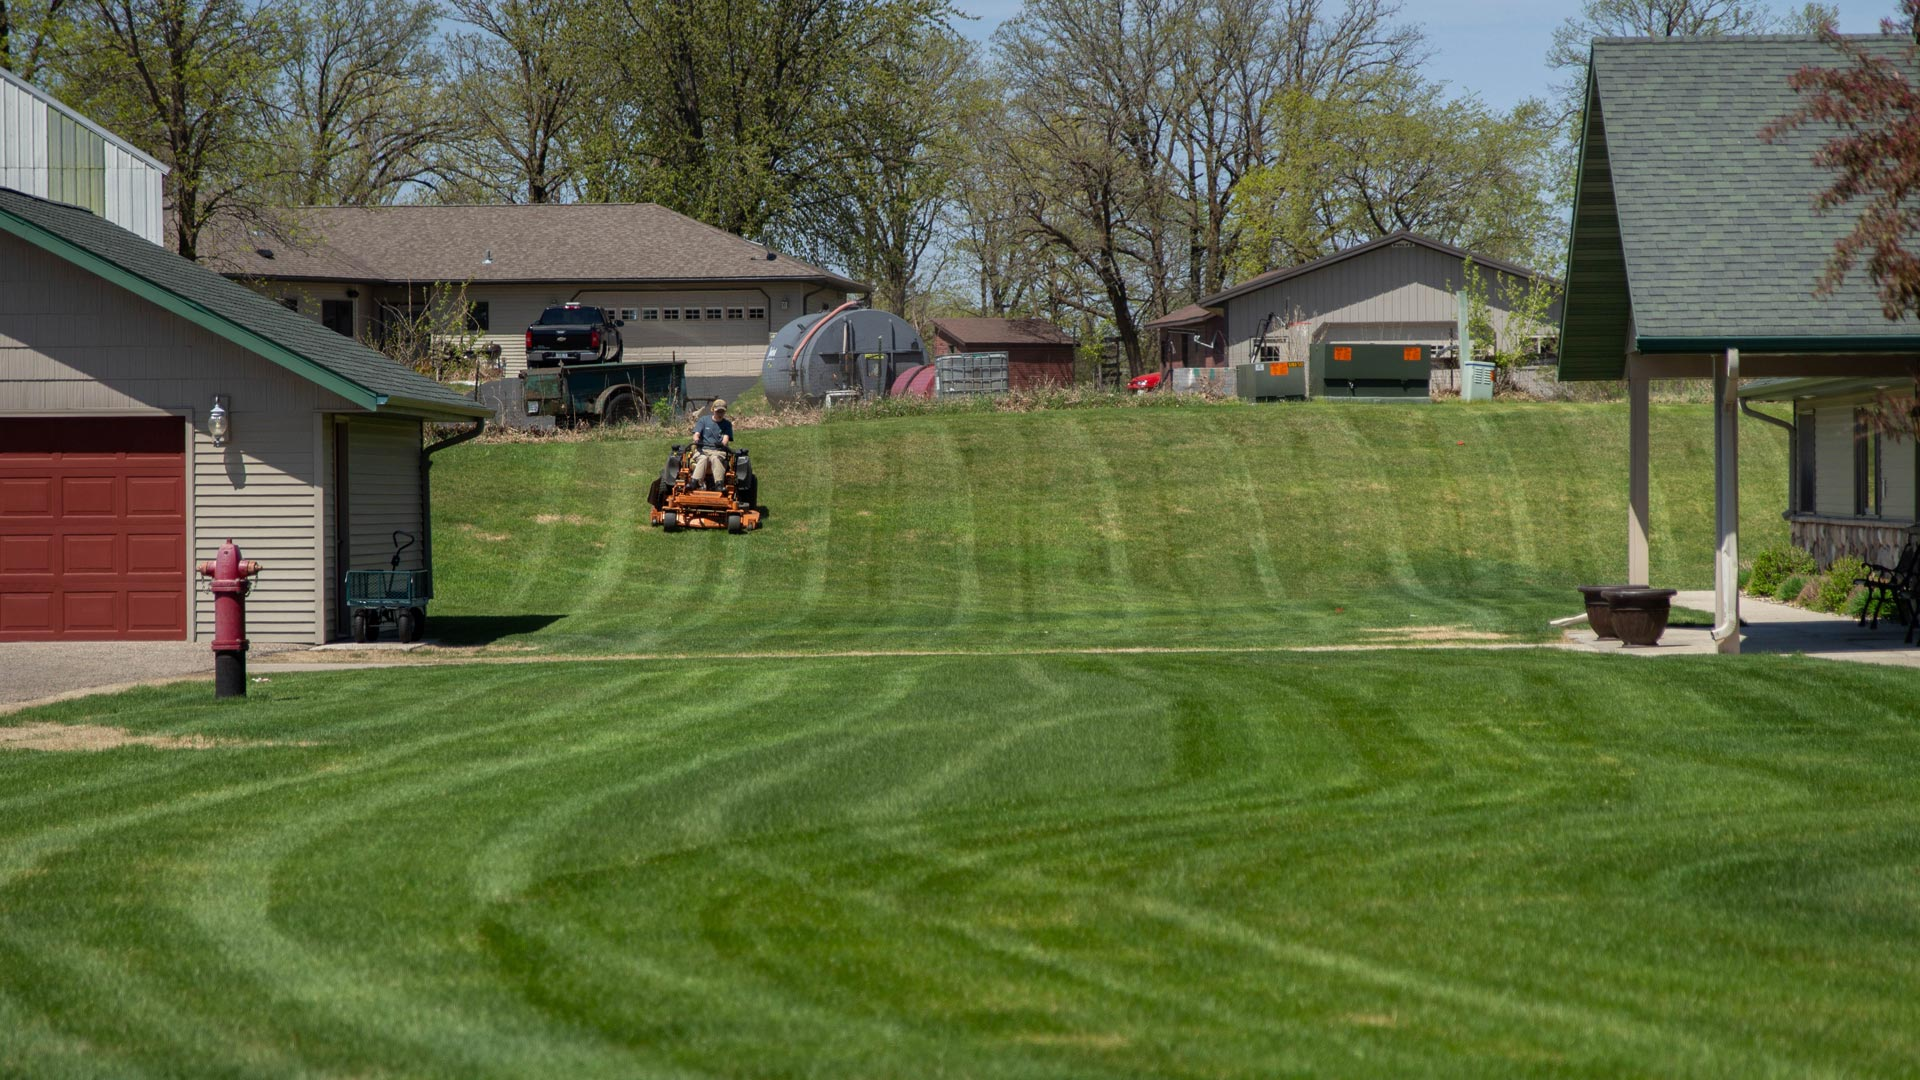 Our team member mowing a residential lawn in Shoreham, MN.